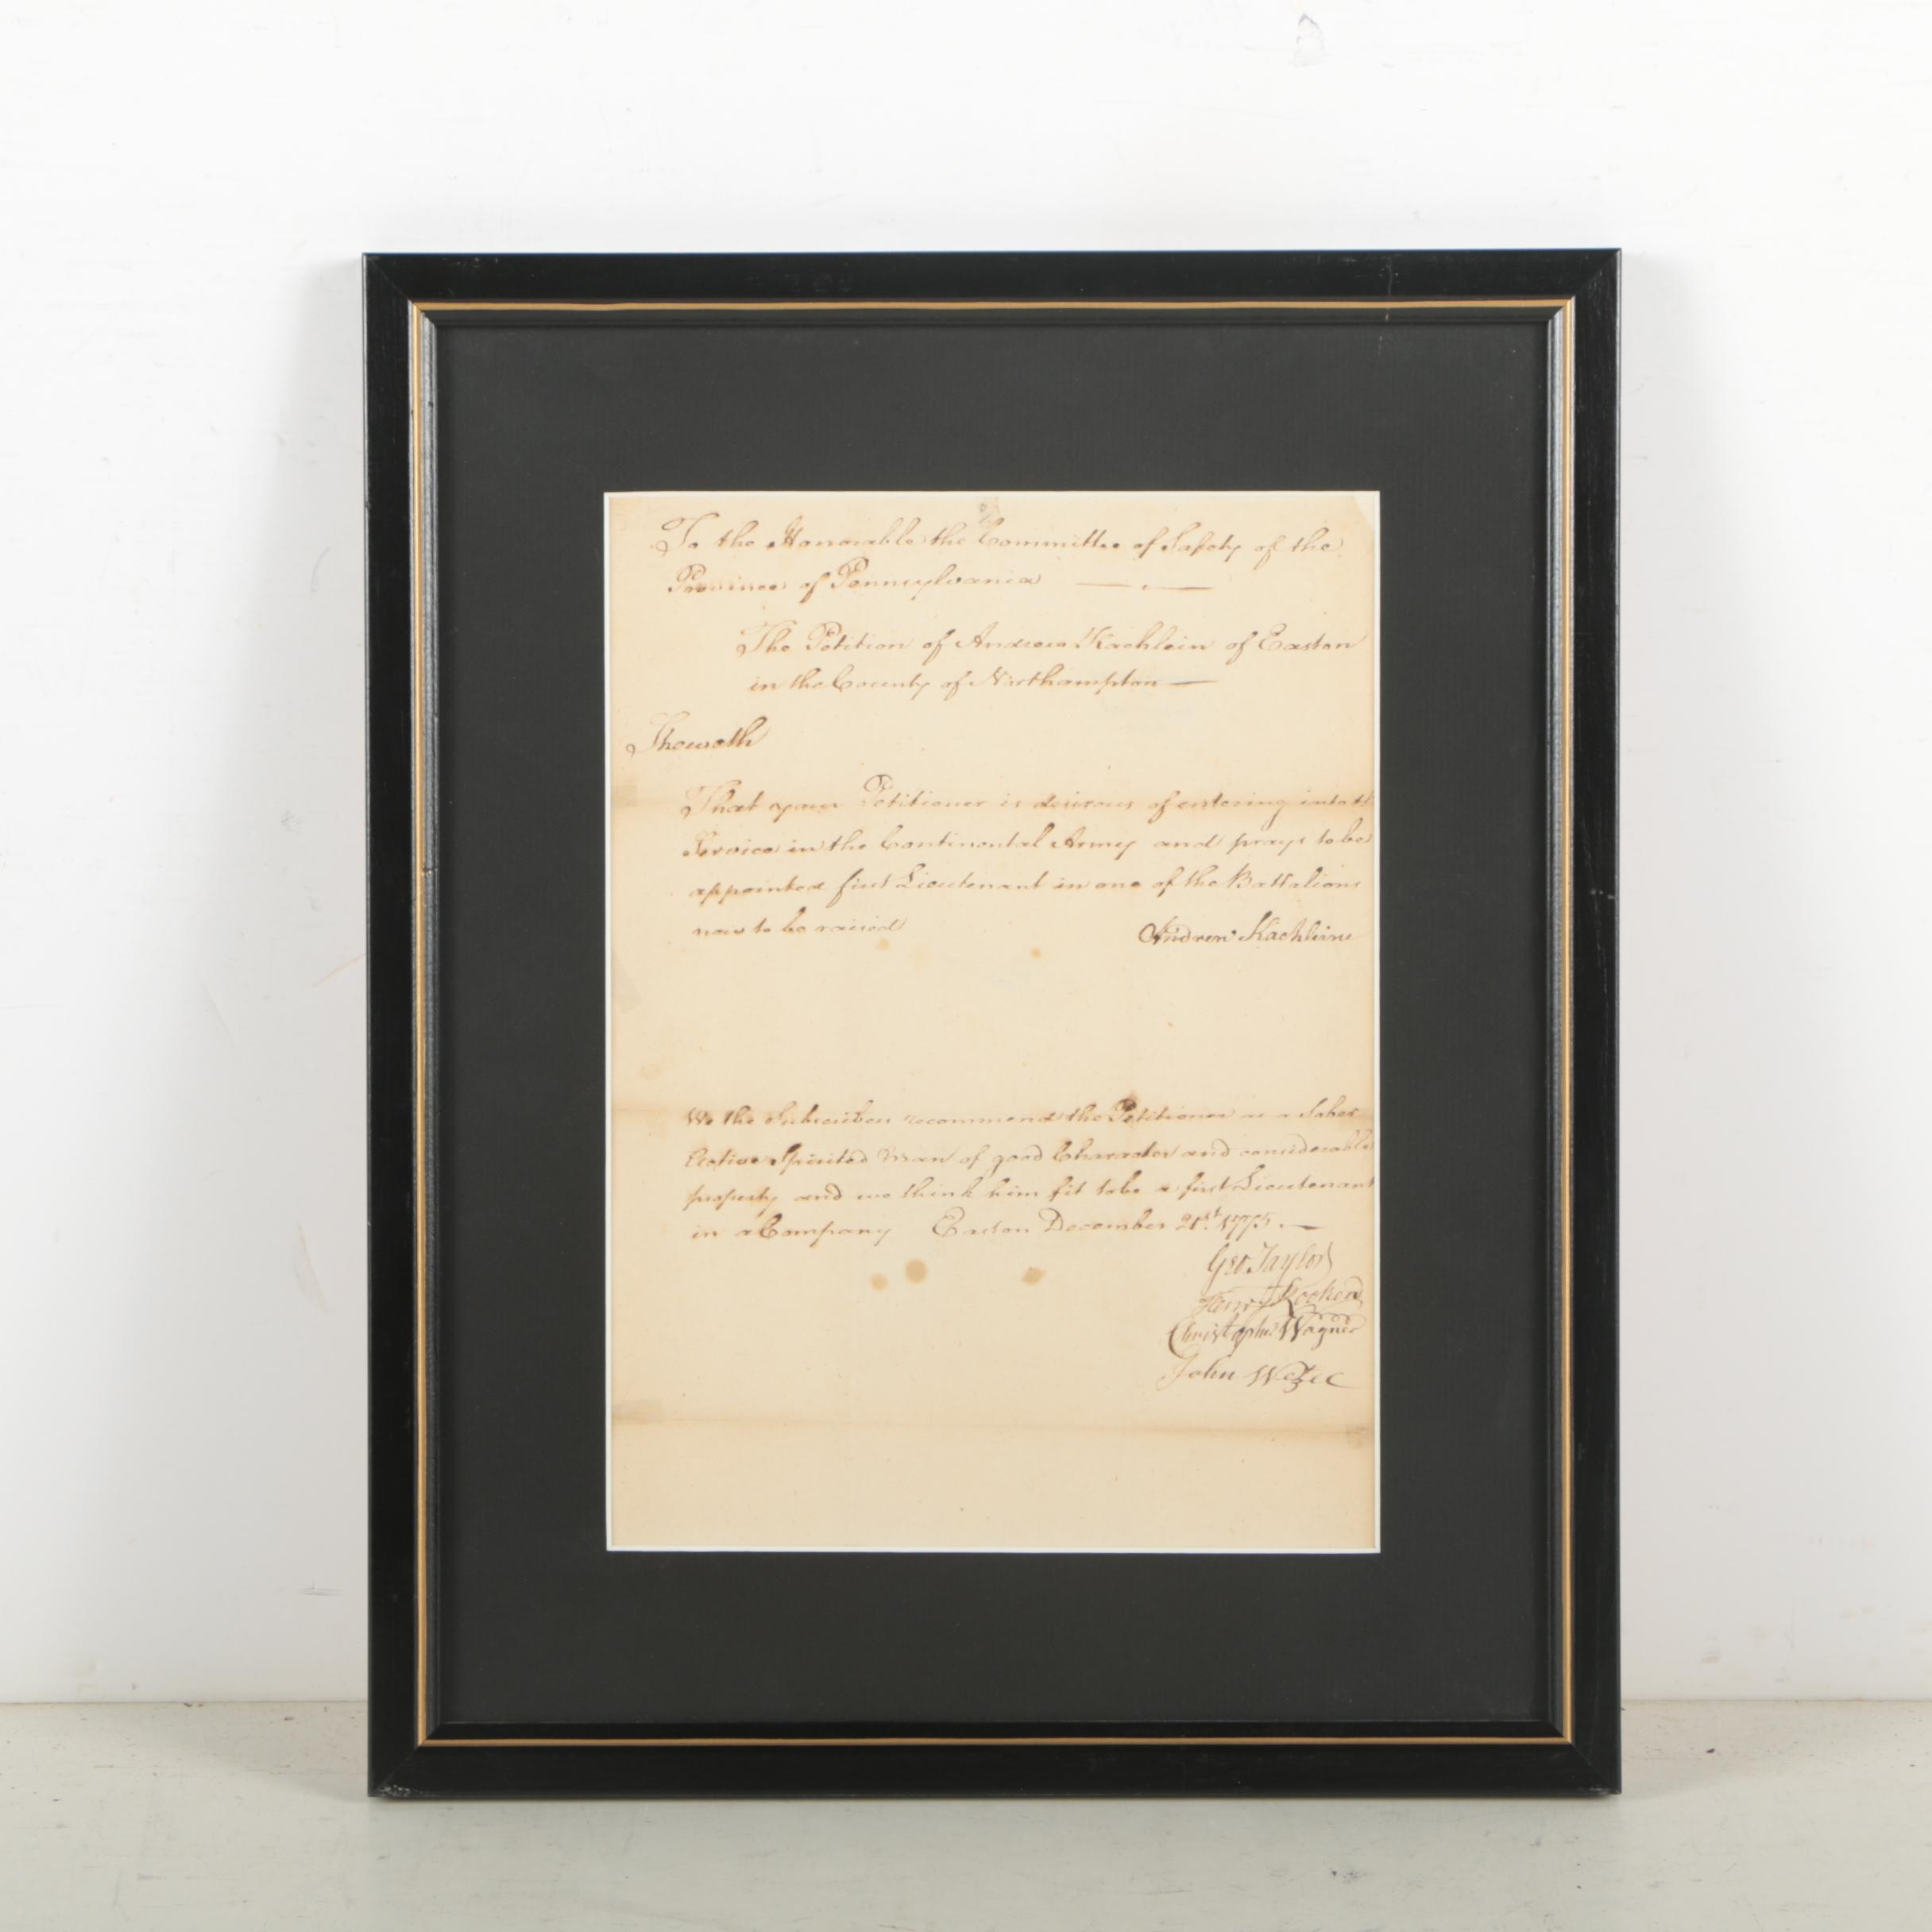 George Taylor War-Date Document Signed December 21, 1775